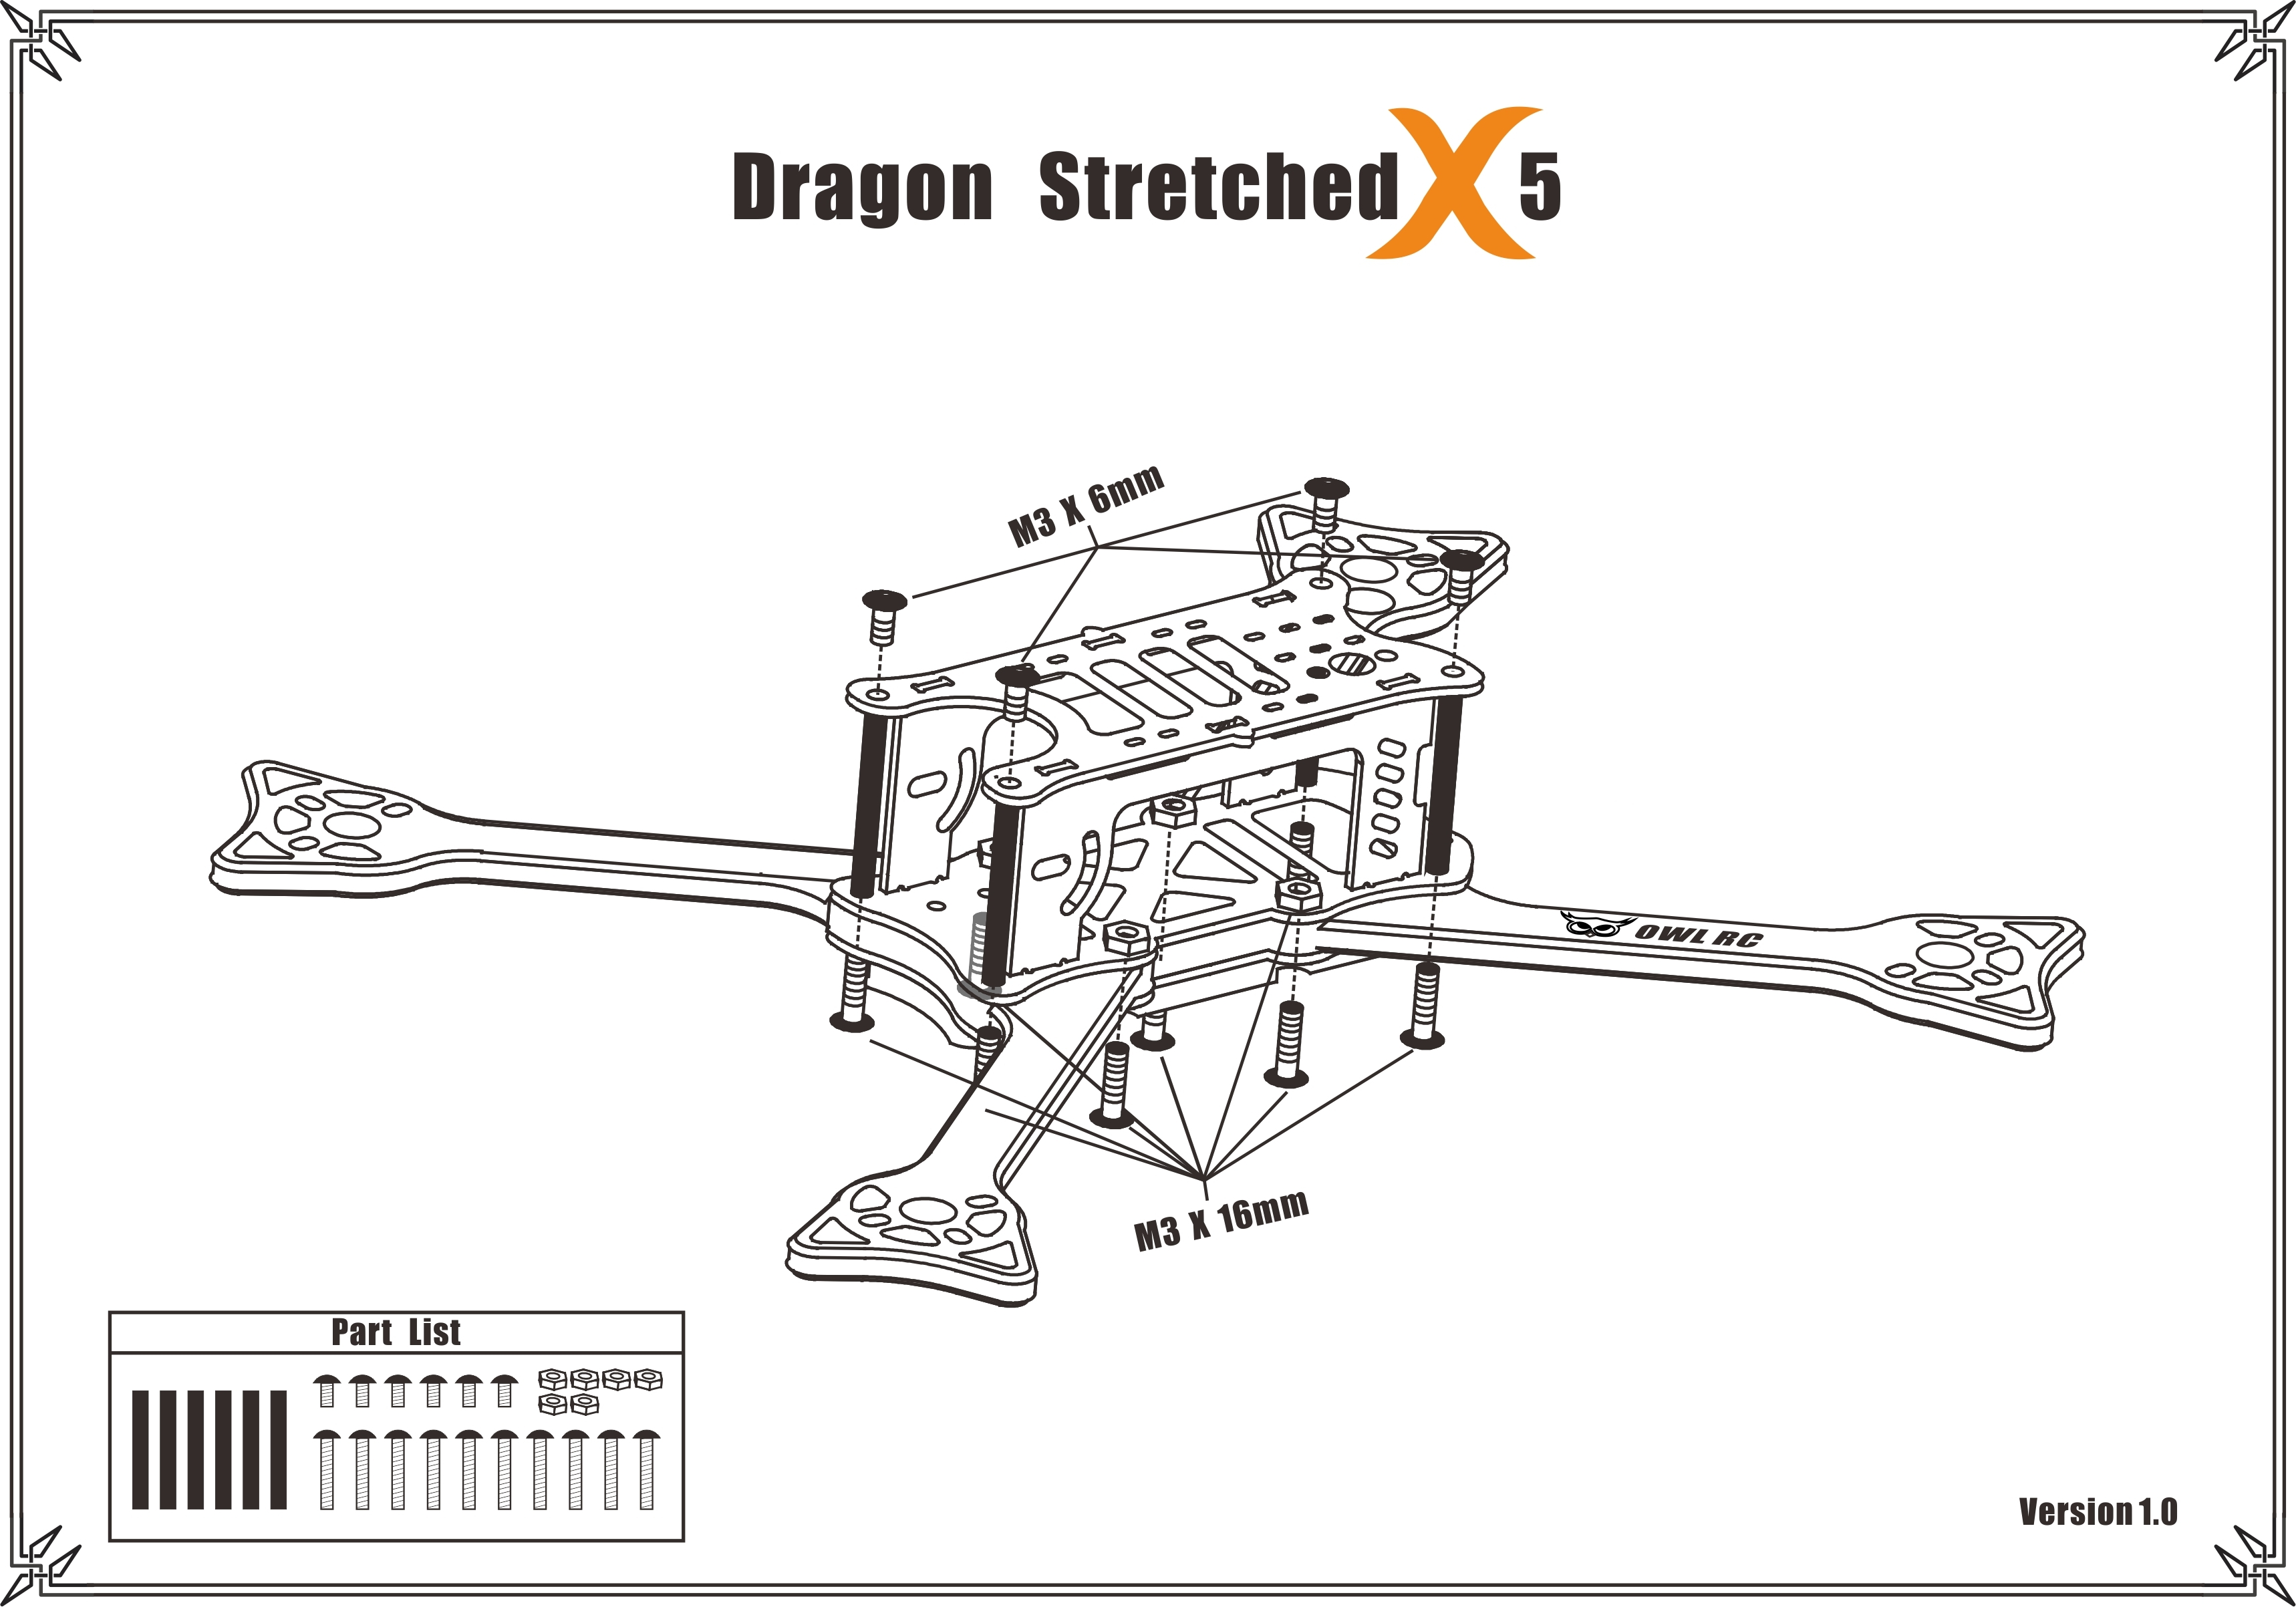 OWLRC Dragon Stretched X5 DSX-5 228mm 5mm Arm FPV Racing Frame Kit 3k Full Carbon Fiber